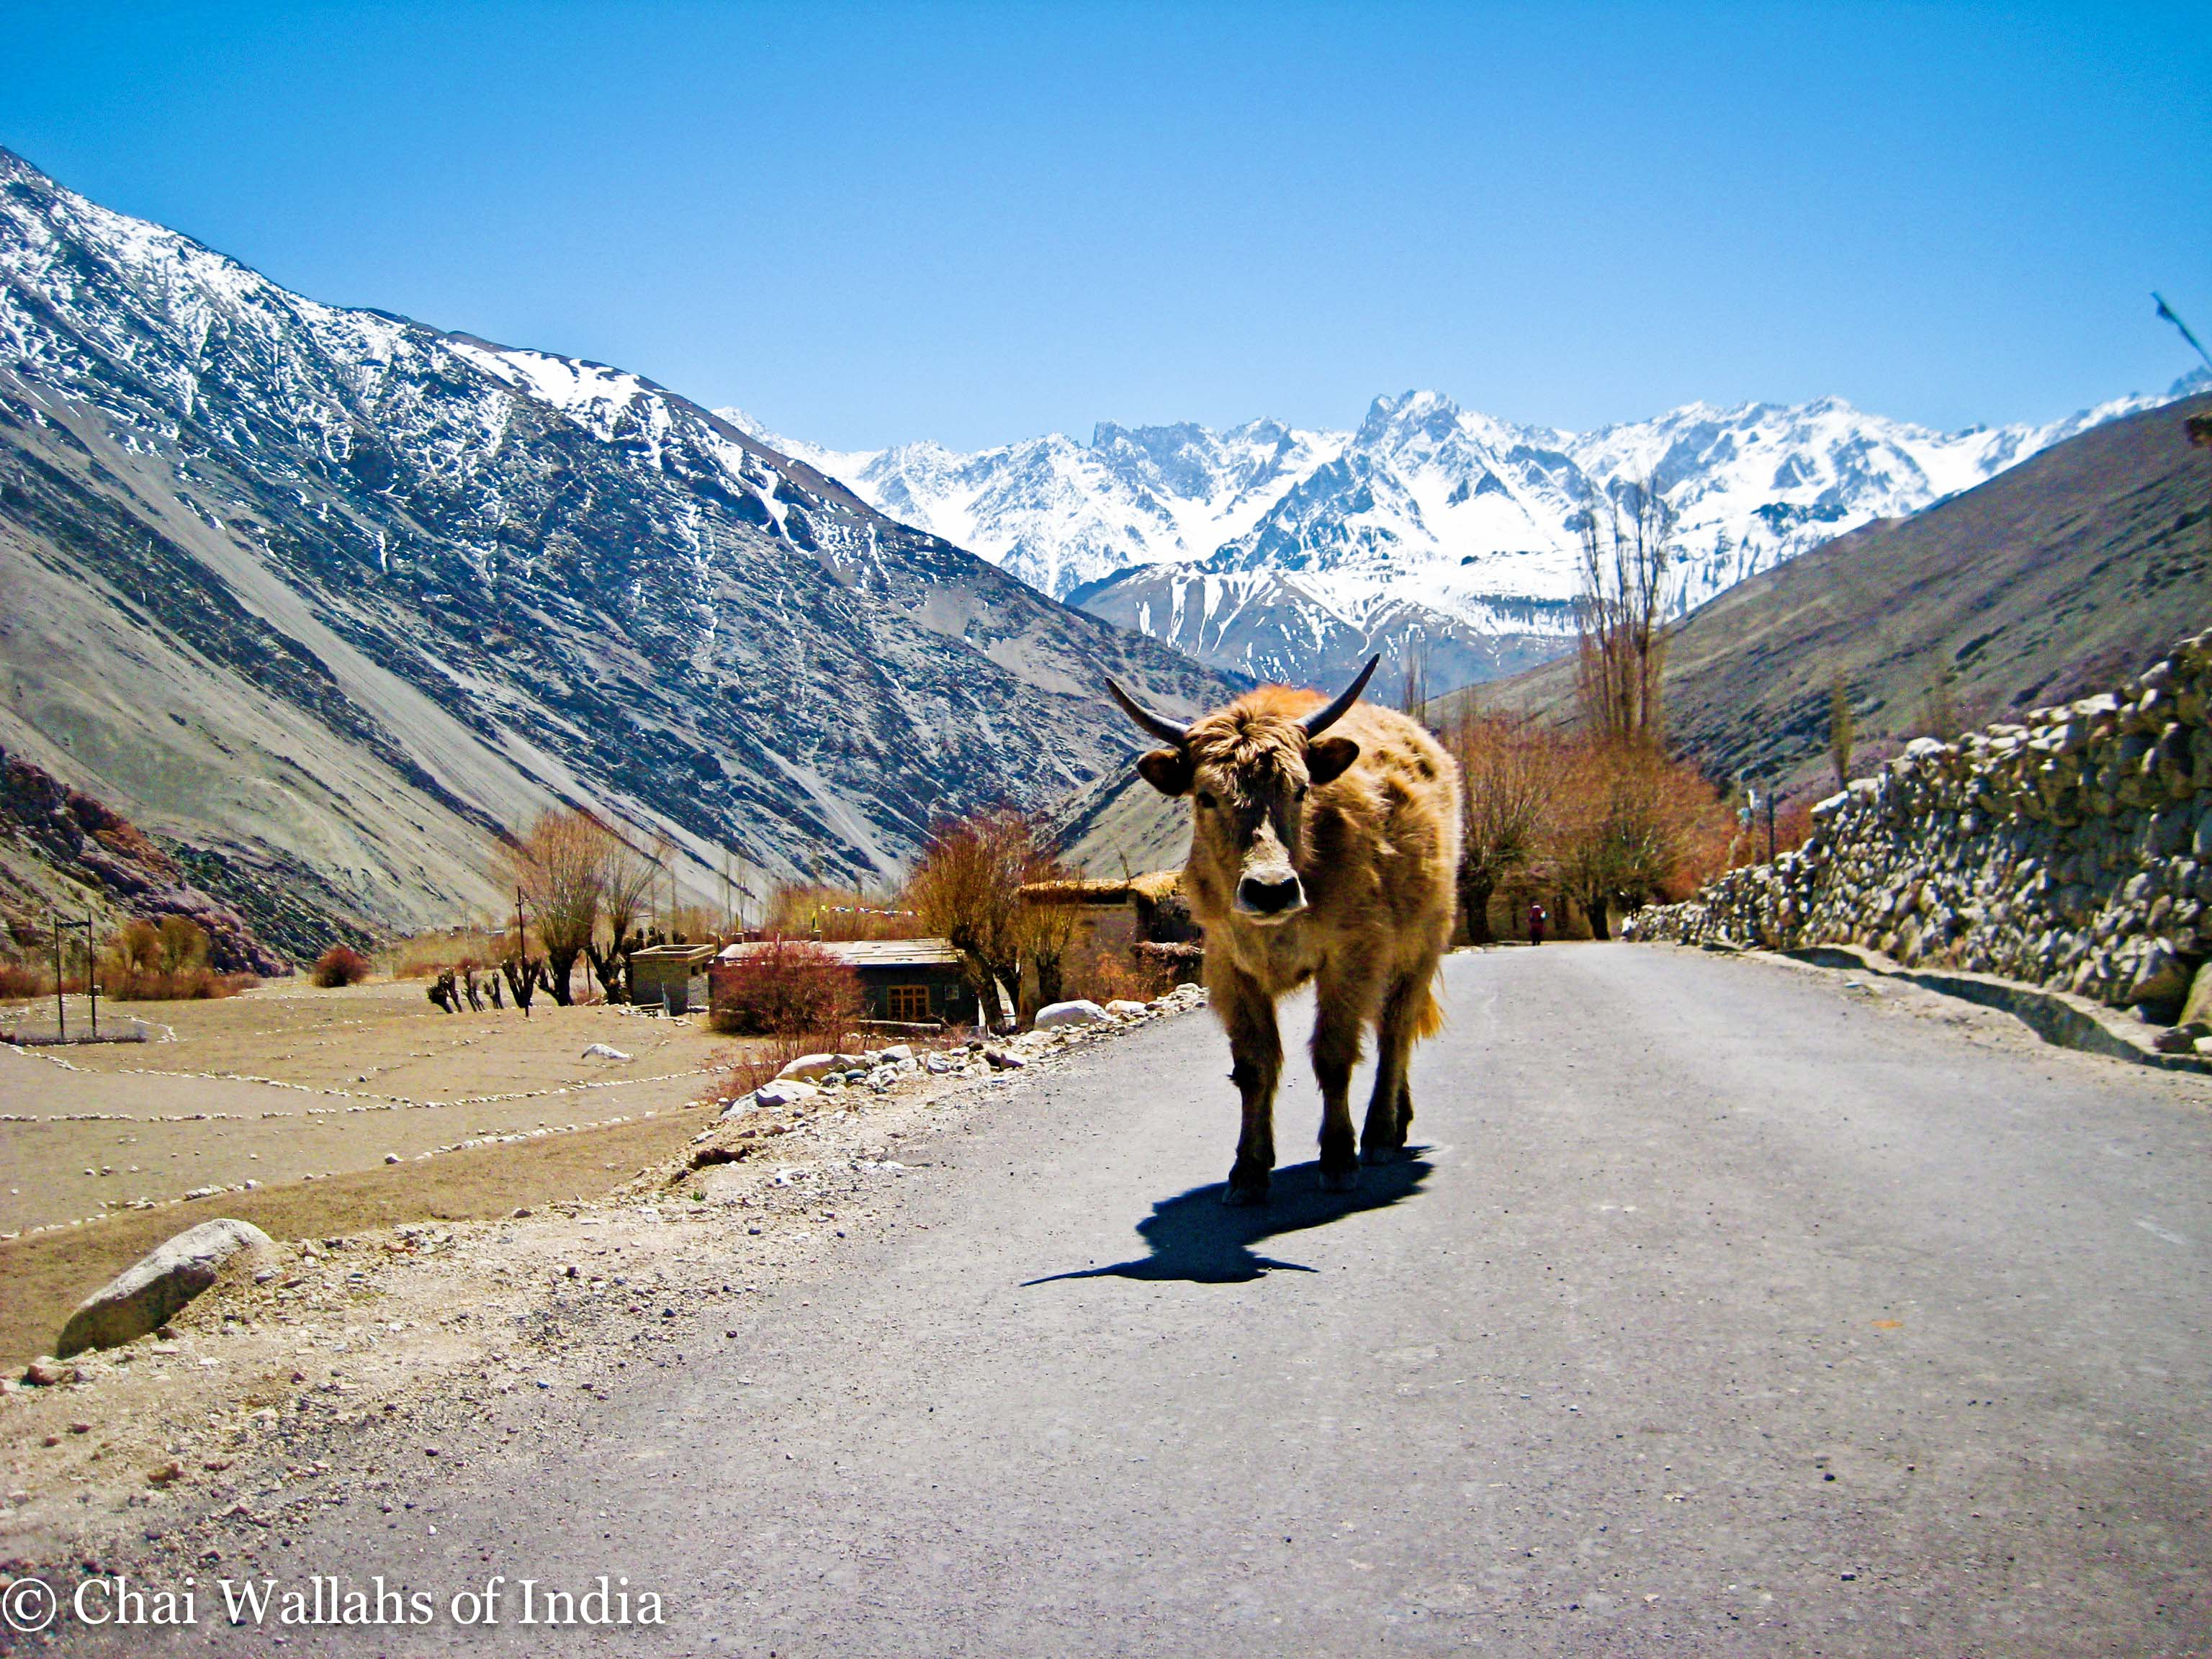 A yak walks down a road in front of Himalayan mountain peaks in Ladakh, India.